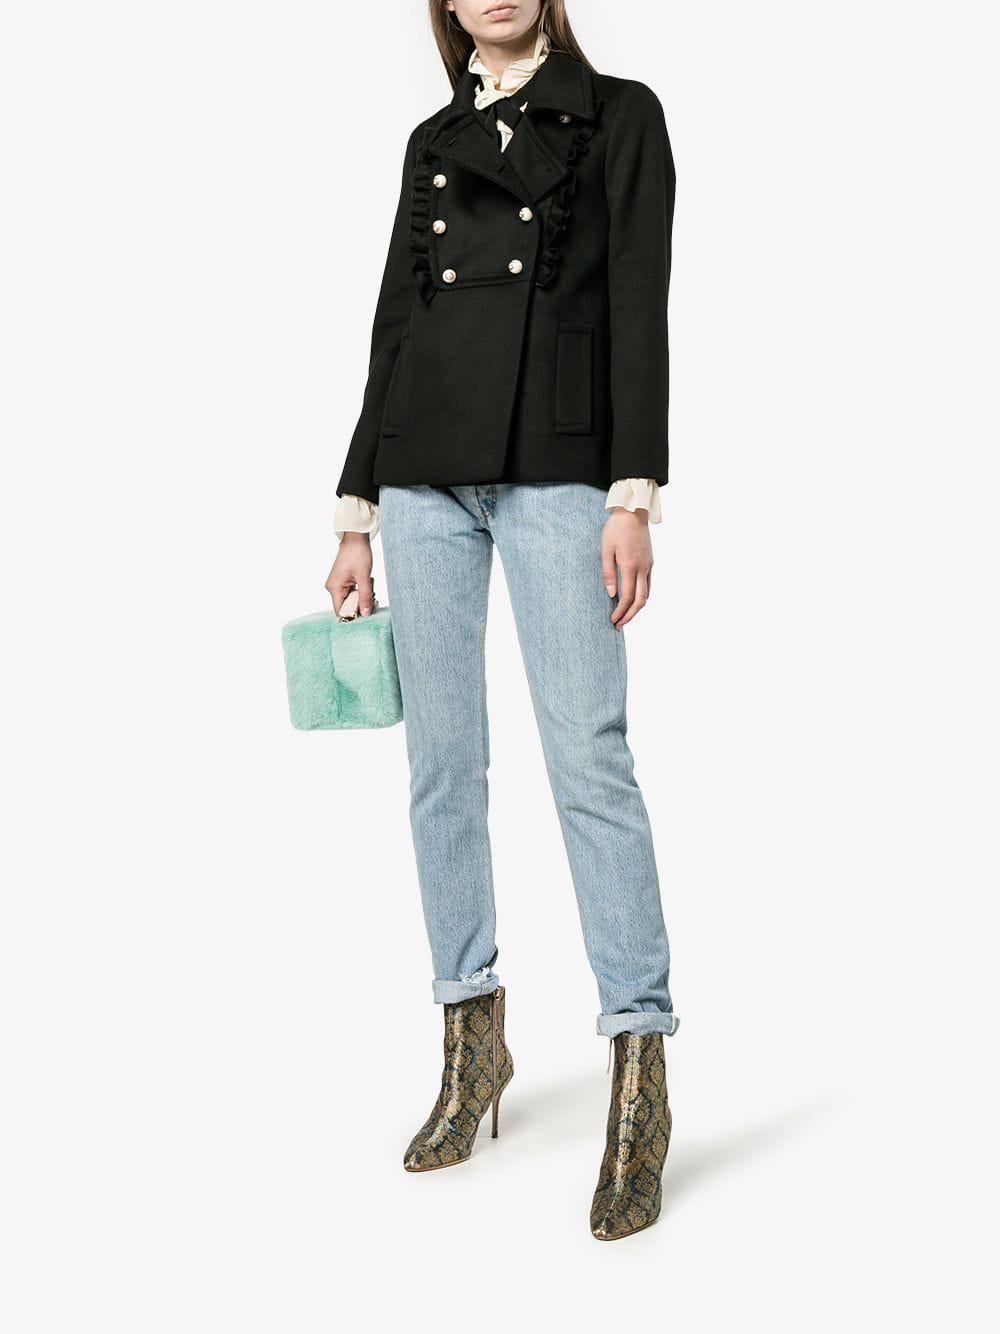 69a094210 Lyst - Gucci Ruffle Detail Jacket in Black - Save 40%